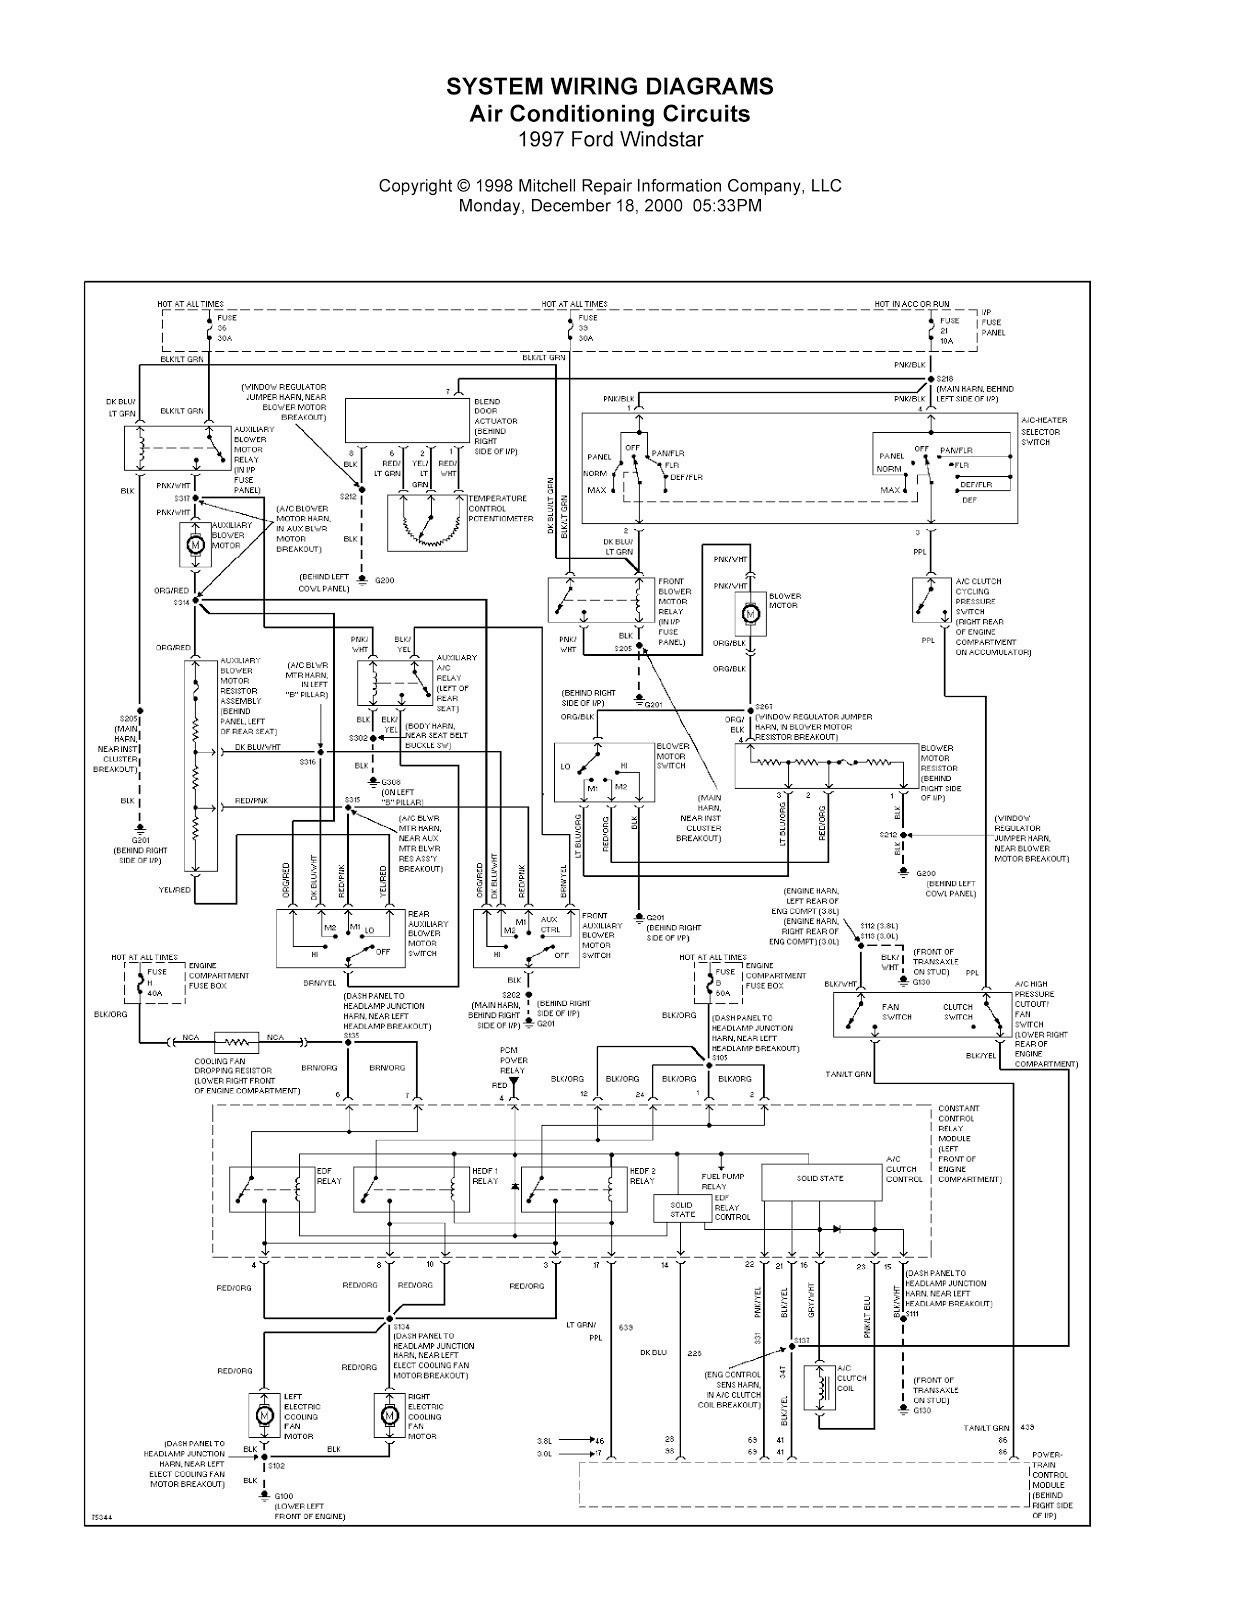 [DIAGRAM_3NM]  452E12 01 Ford Freestar Engine Manualsly | Wiring Library | 2000 Ford Windstar Wiring Schematic |  | Wiring Library